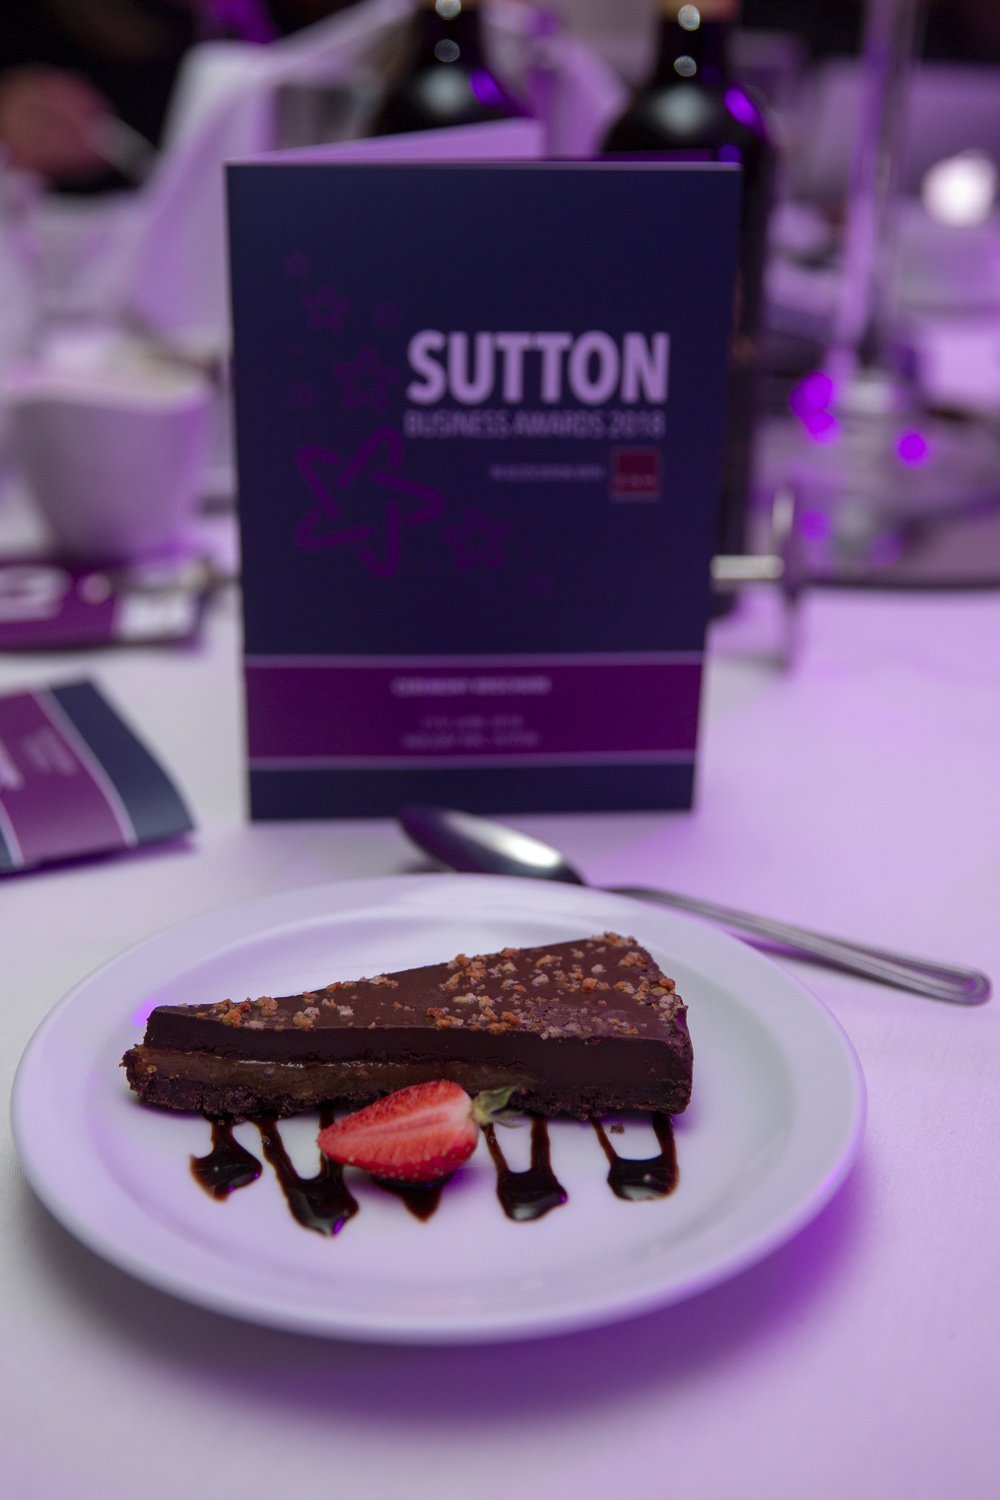 SuttonAwards2018_157.jpg